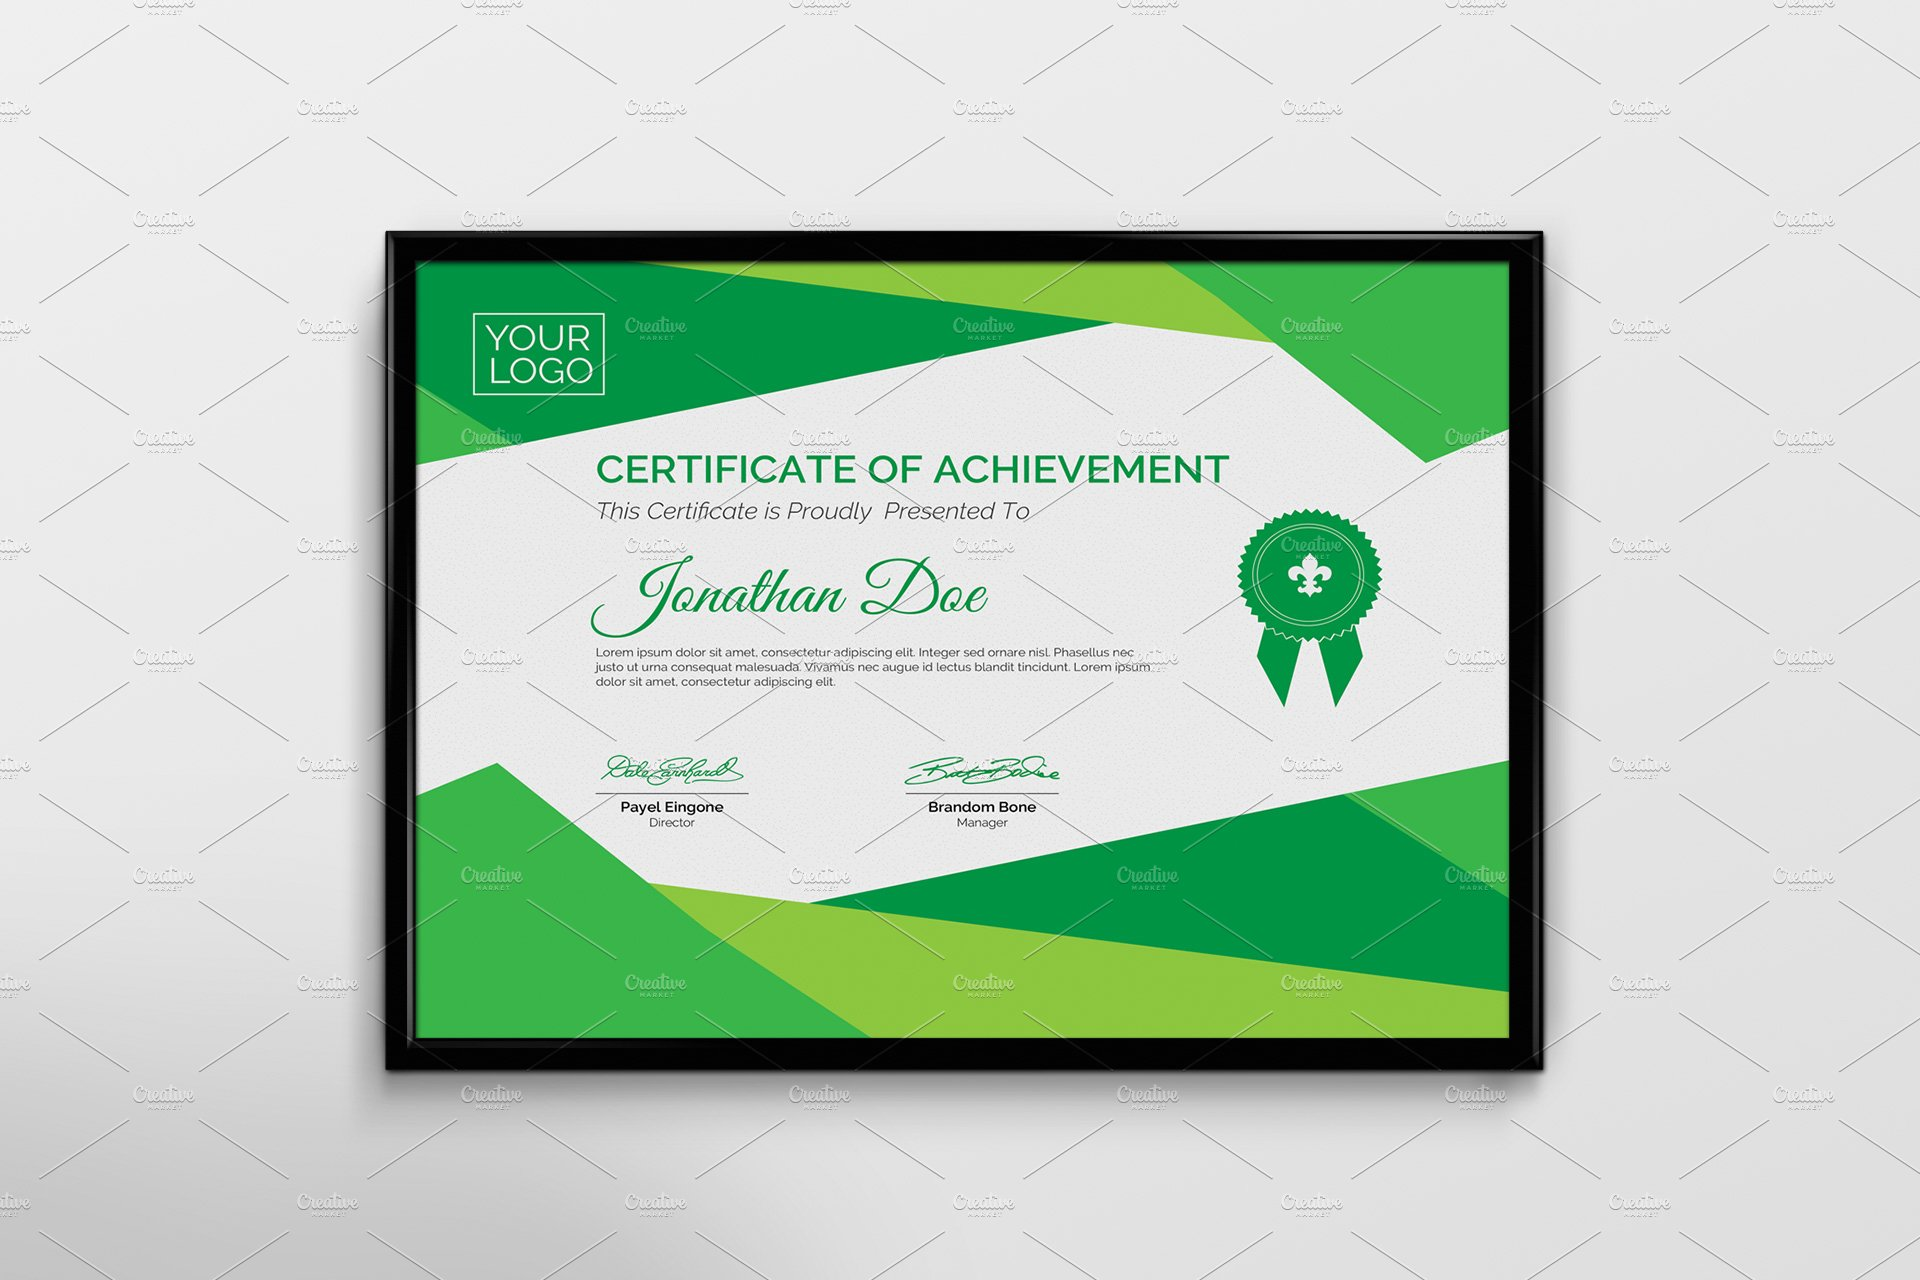 50 certificate templates to design stunning awards creative certificate template alramifo Images